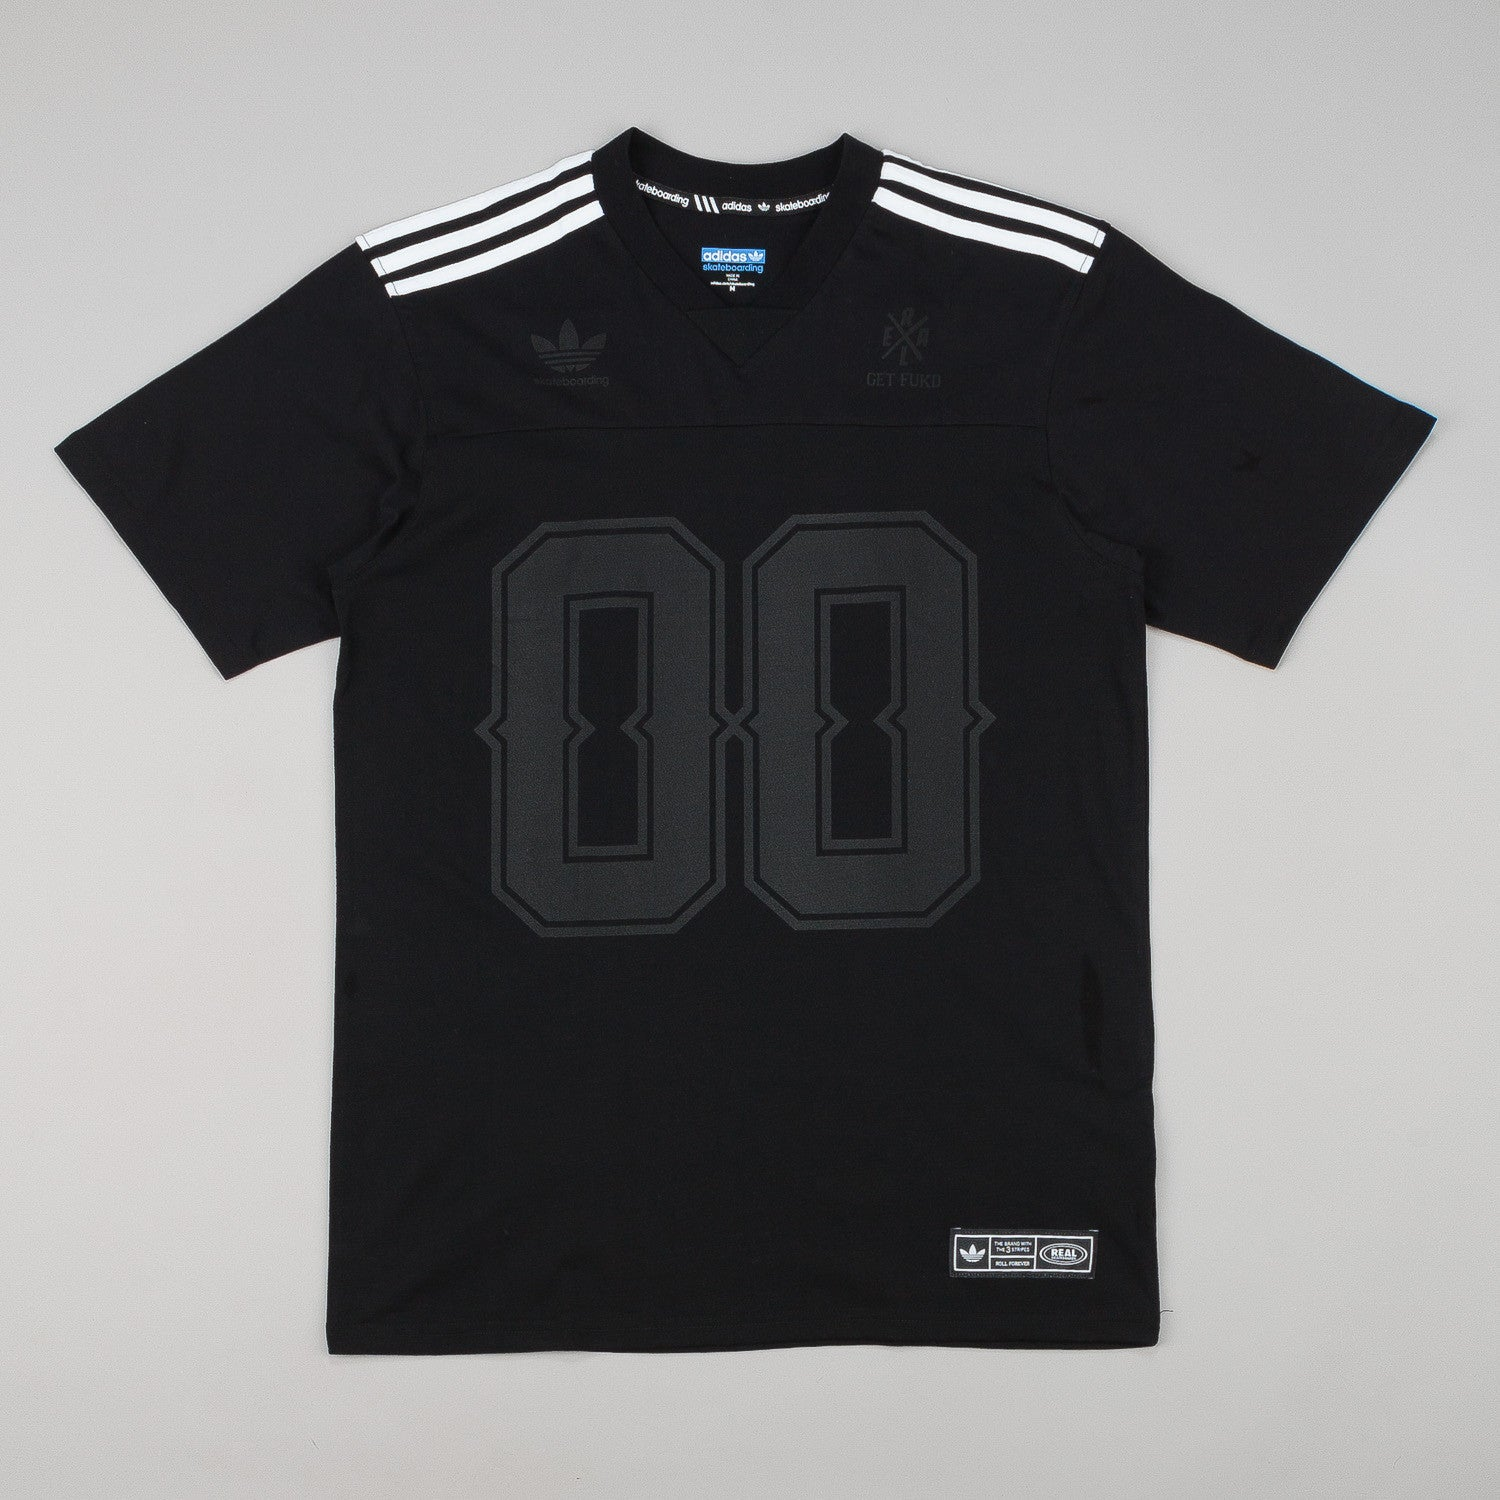 Adidas X Real Jake Short Sleeve V-Neck Jersey